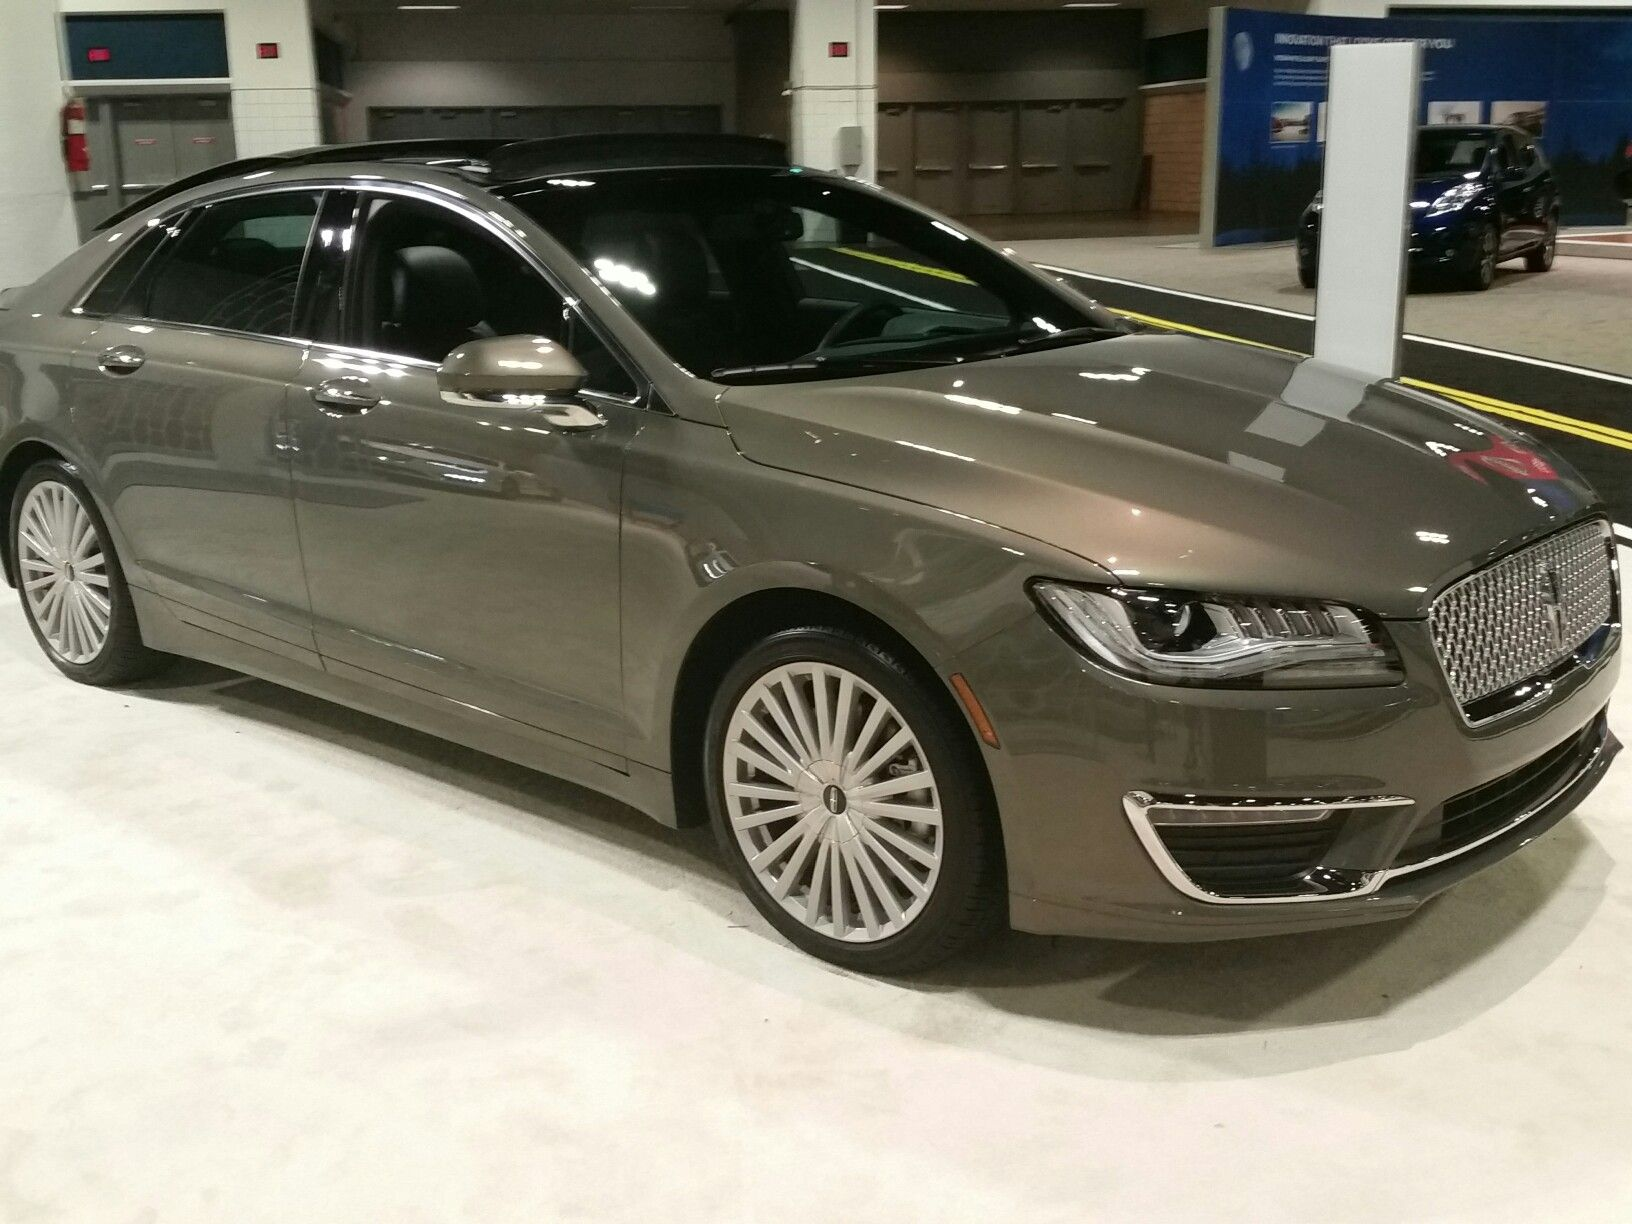 2017 lincoln mkz 400hp v6tt new tvd awd drivers pack cars lincoln motor company and motor company